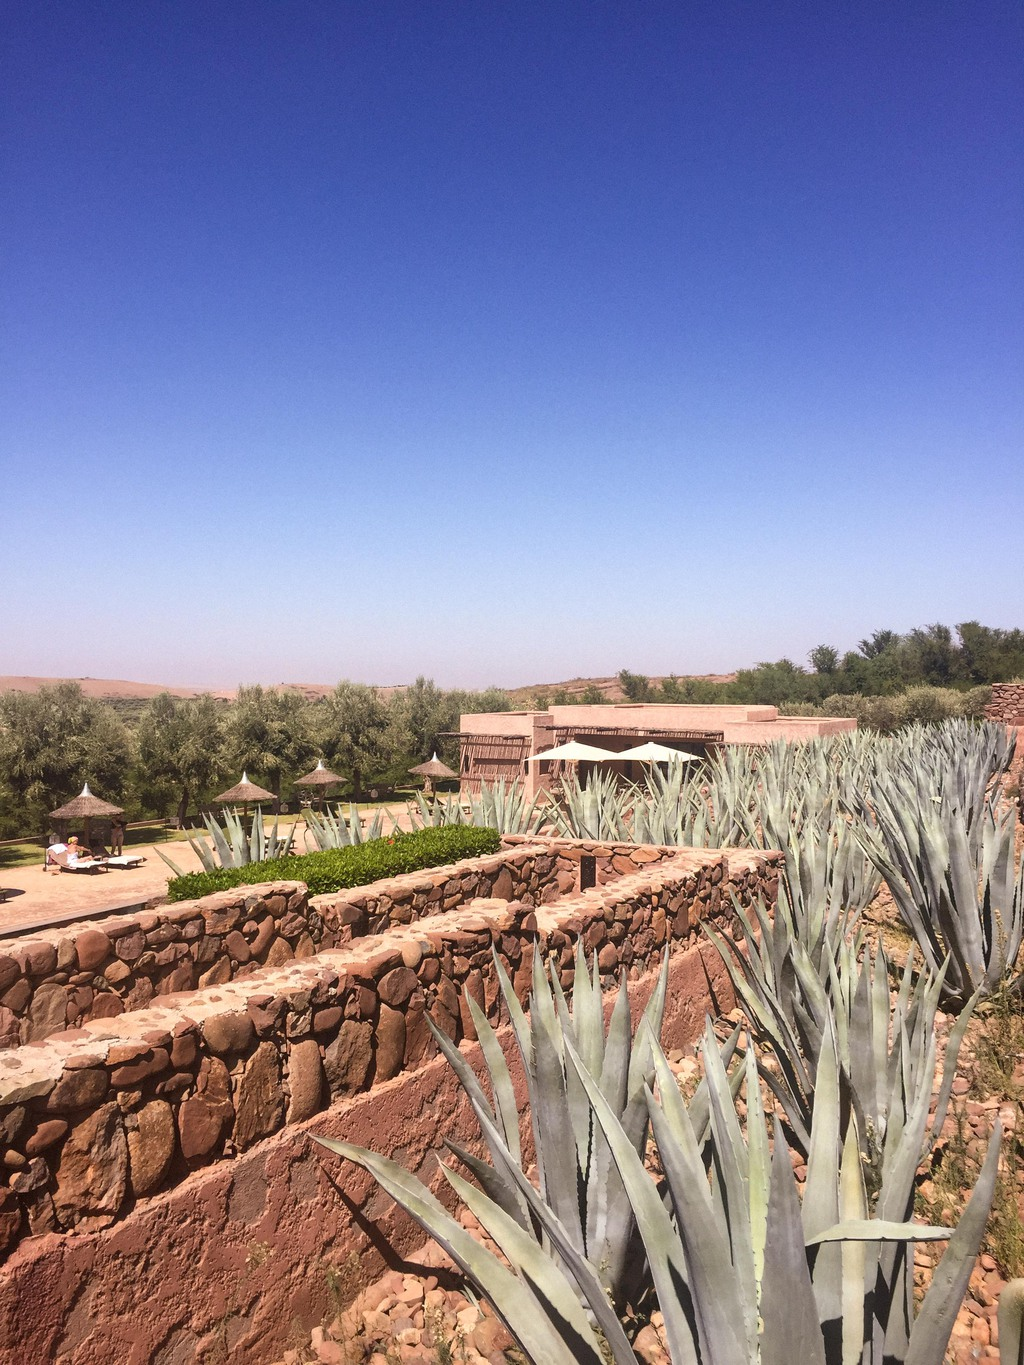 MY STAY AT LE PALAIS PAYSAN, MOROCCO